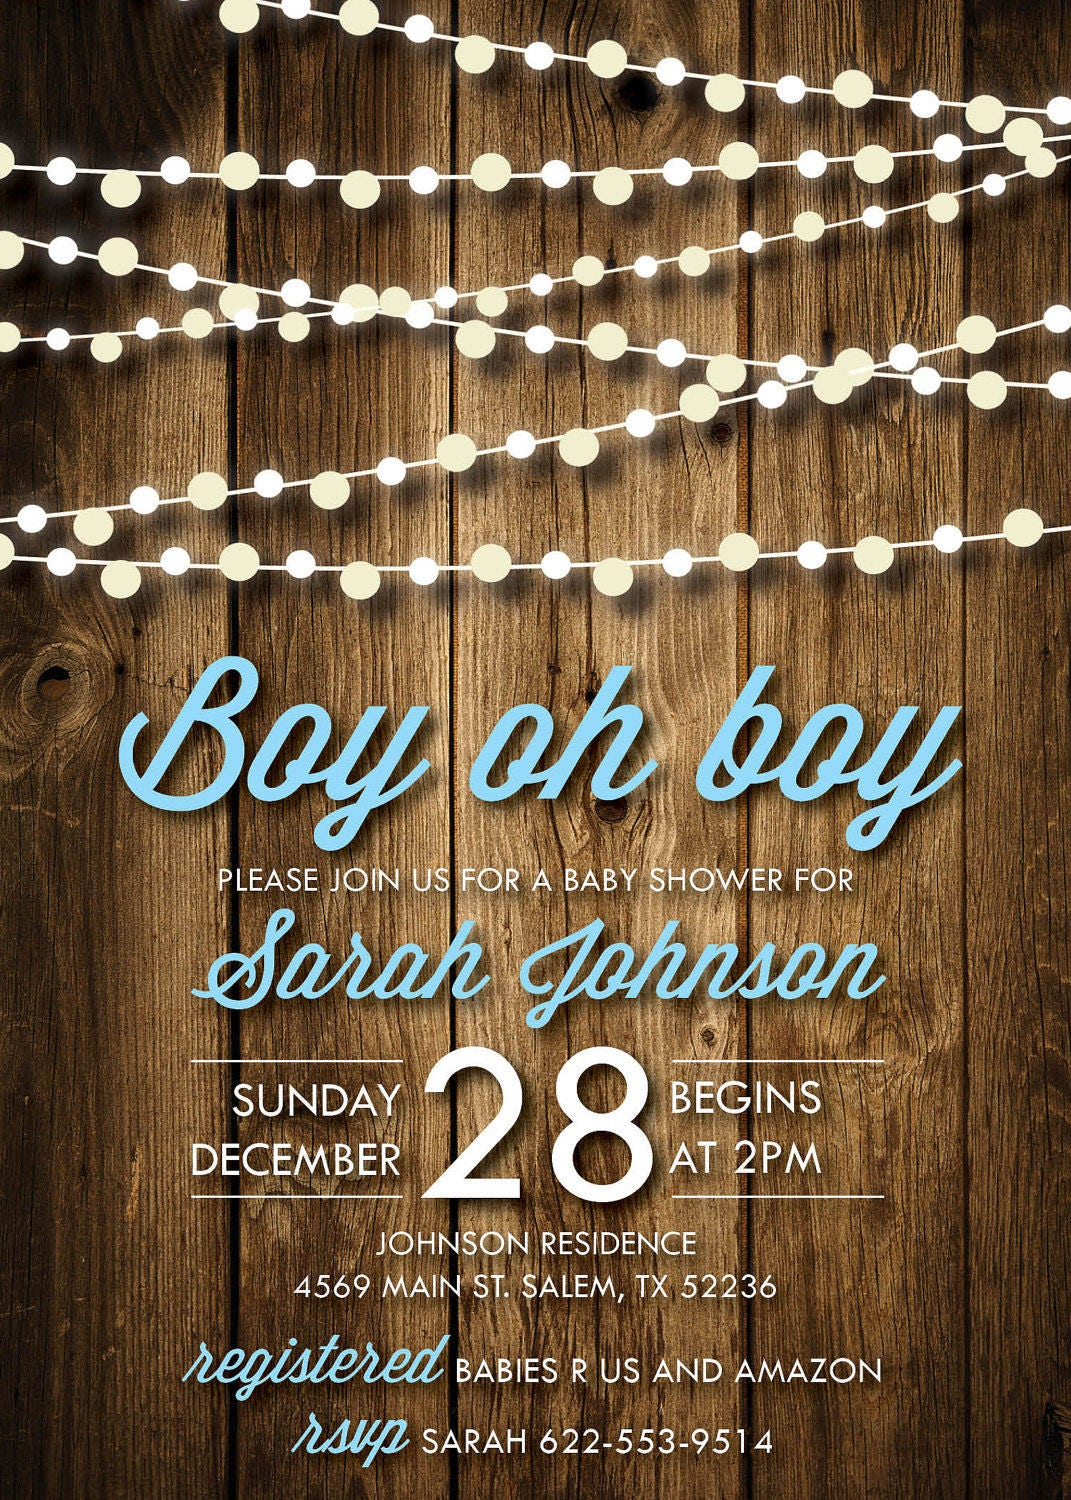 Baby Shower Invitations | Boy oh boy Baby Shower | Co-ed Baby Shower ...